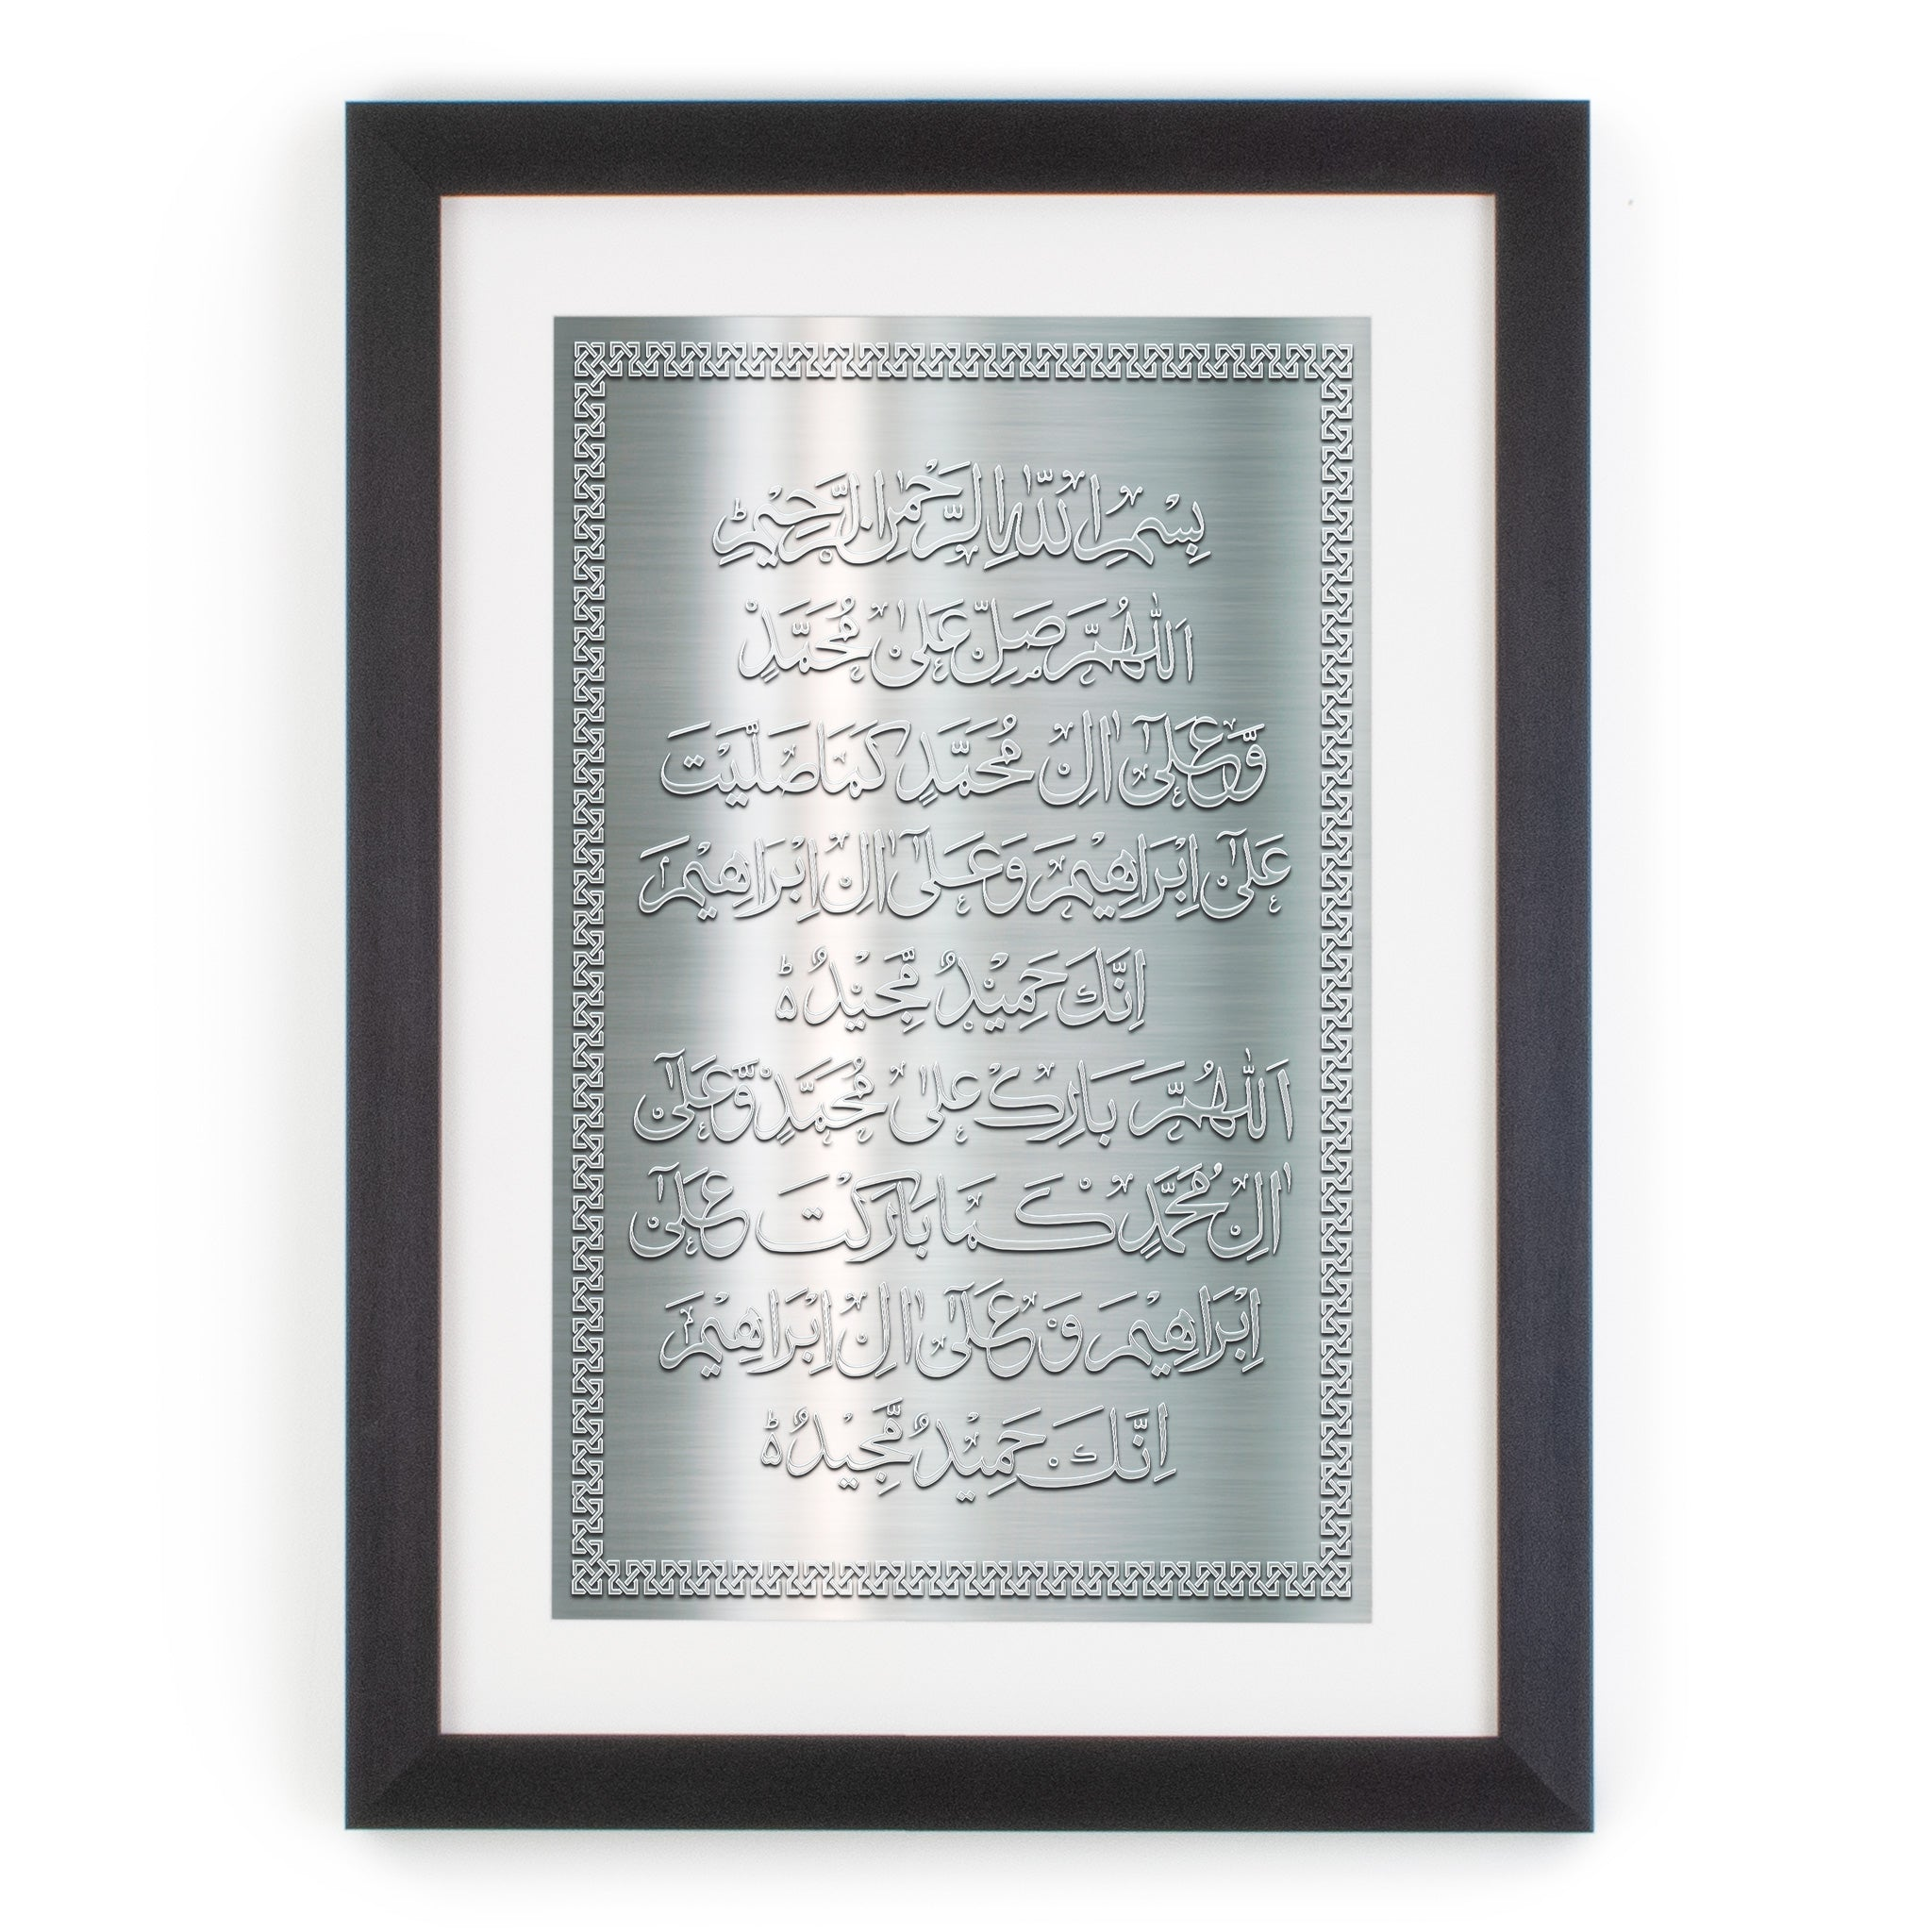 Durood Shareef (Durood-e-Ibrahim) - Brushed Metal Effect Design -  Contemporary Black Framed Islamic Wall Art